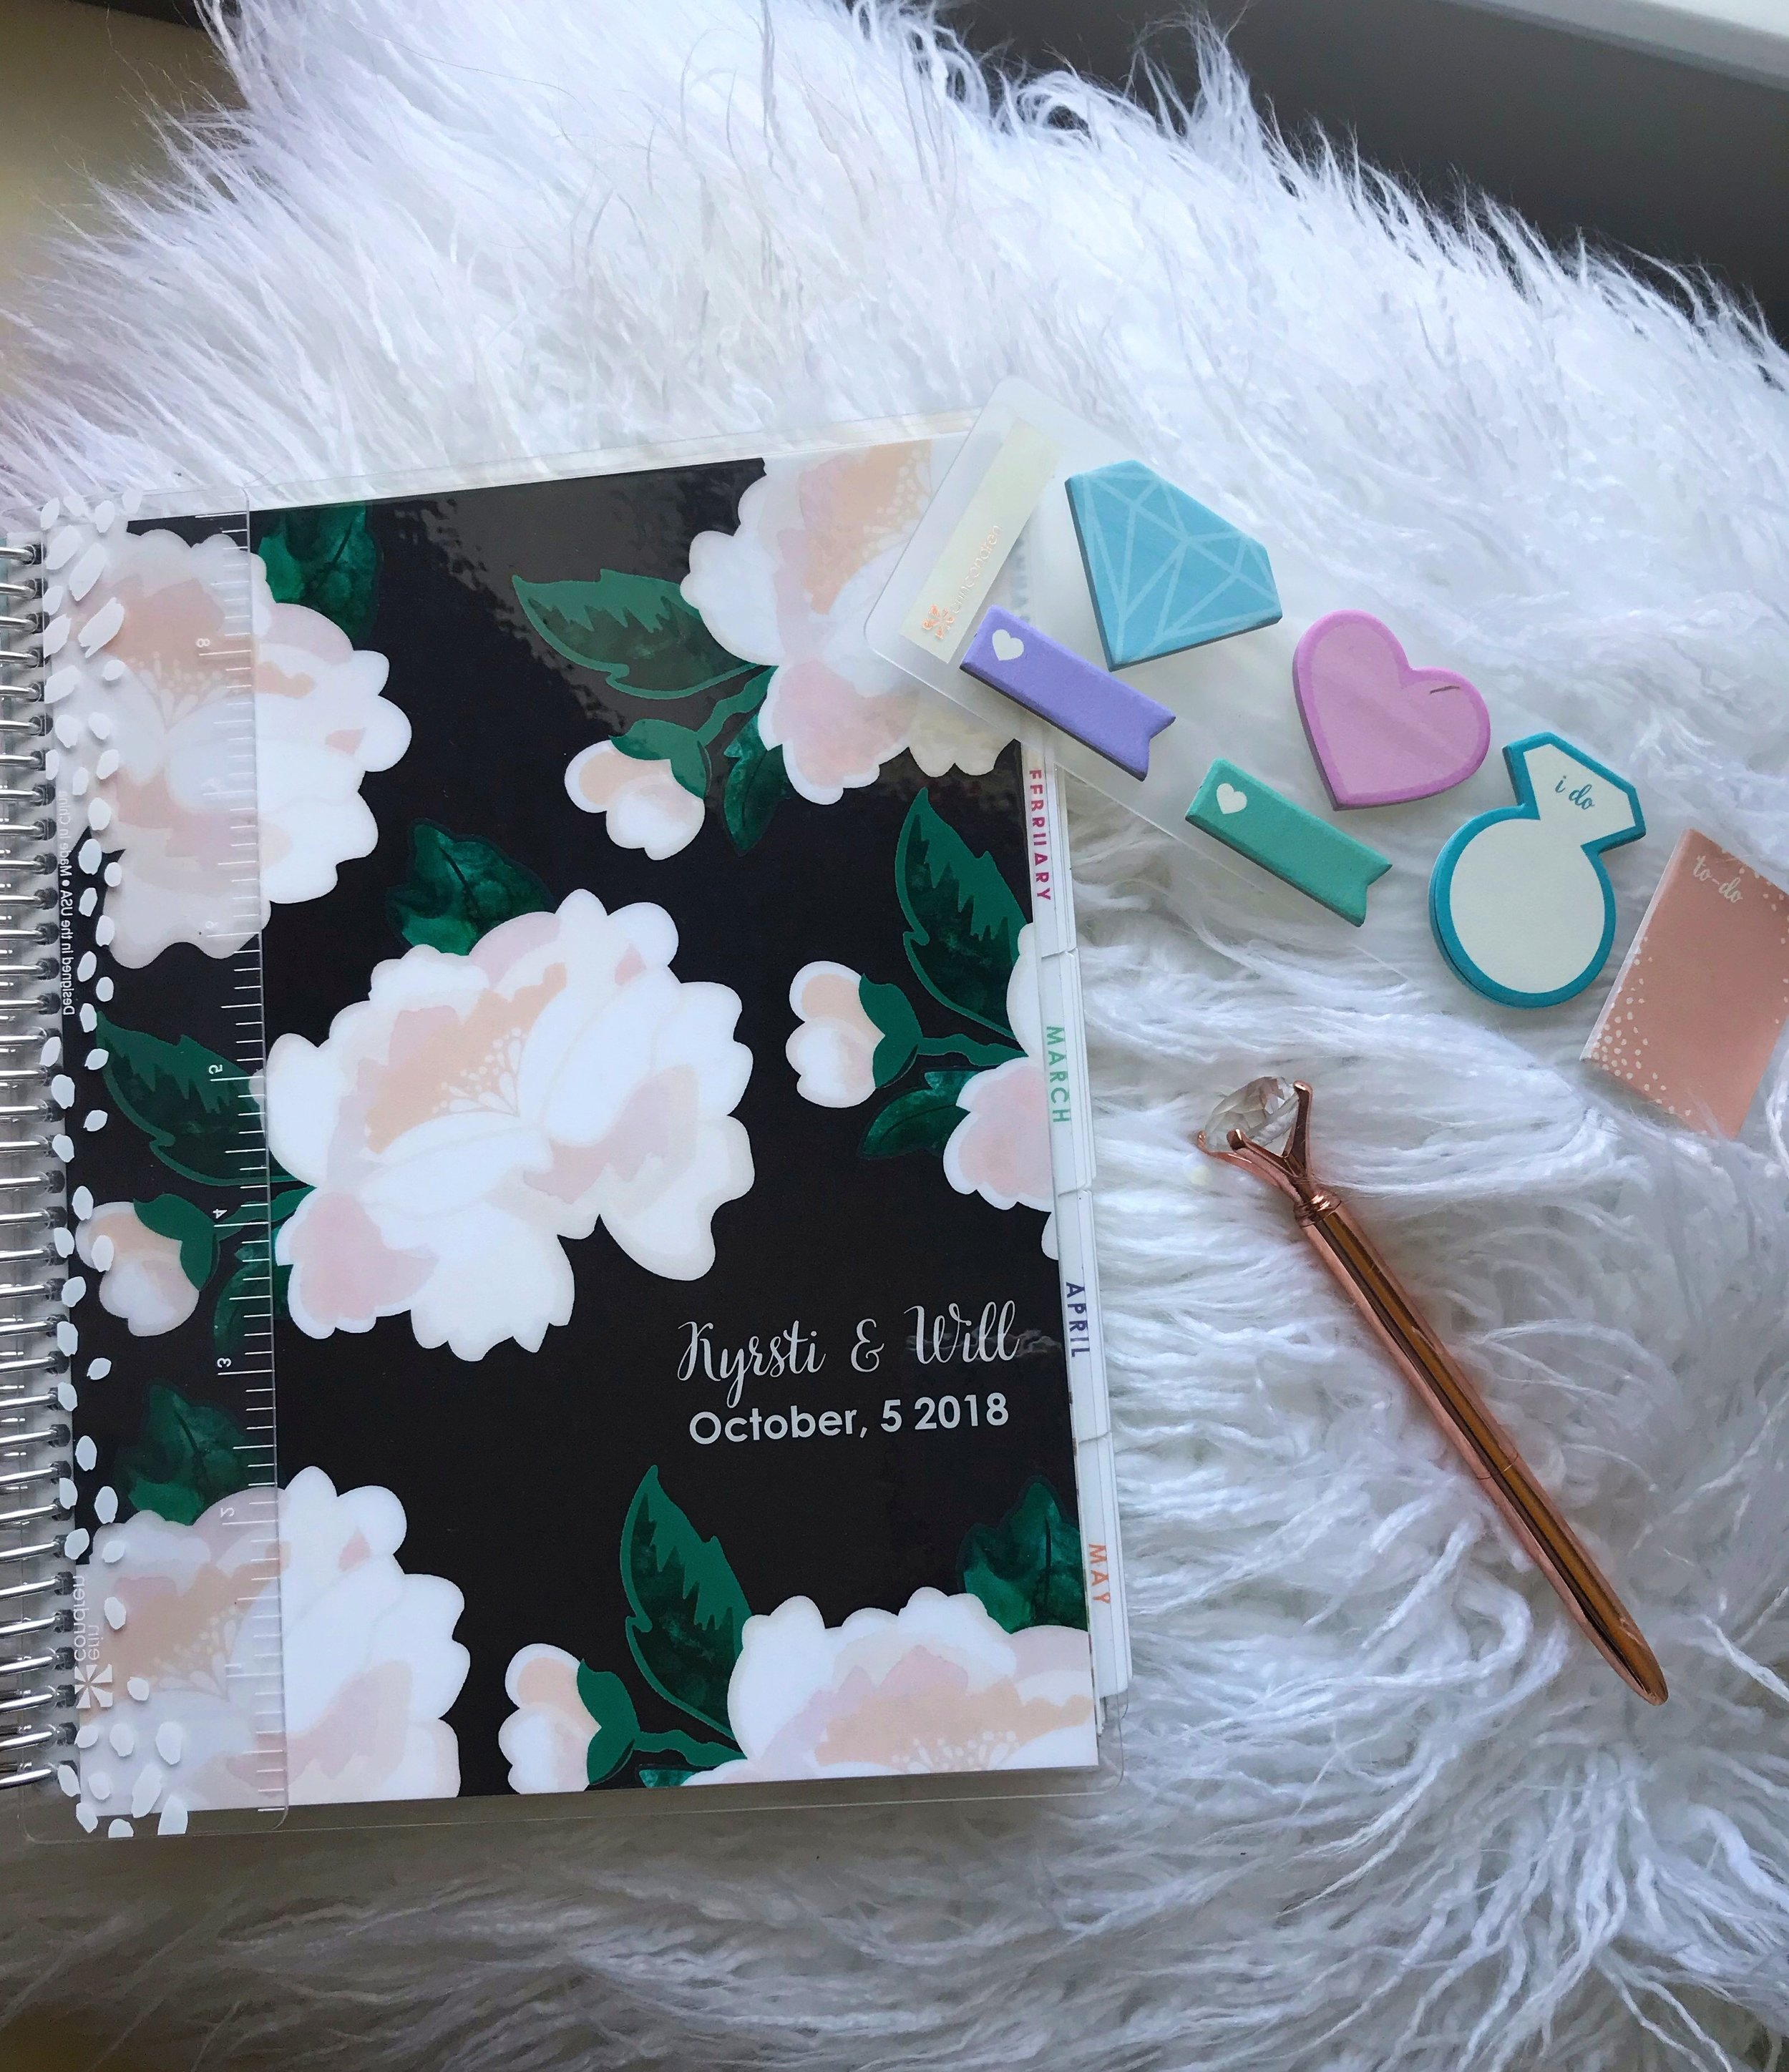 WEDDING PLANNER - https://erincondren.com/wedding-plannersmine was by Erin Condren, but there are plenty out there and I have often seen them at TJ Maxx and similar stores as well as Target!